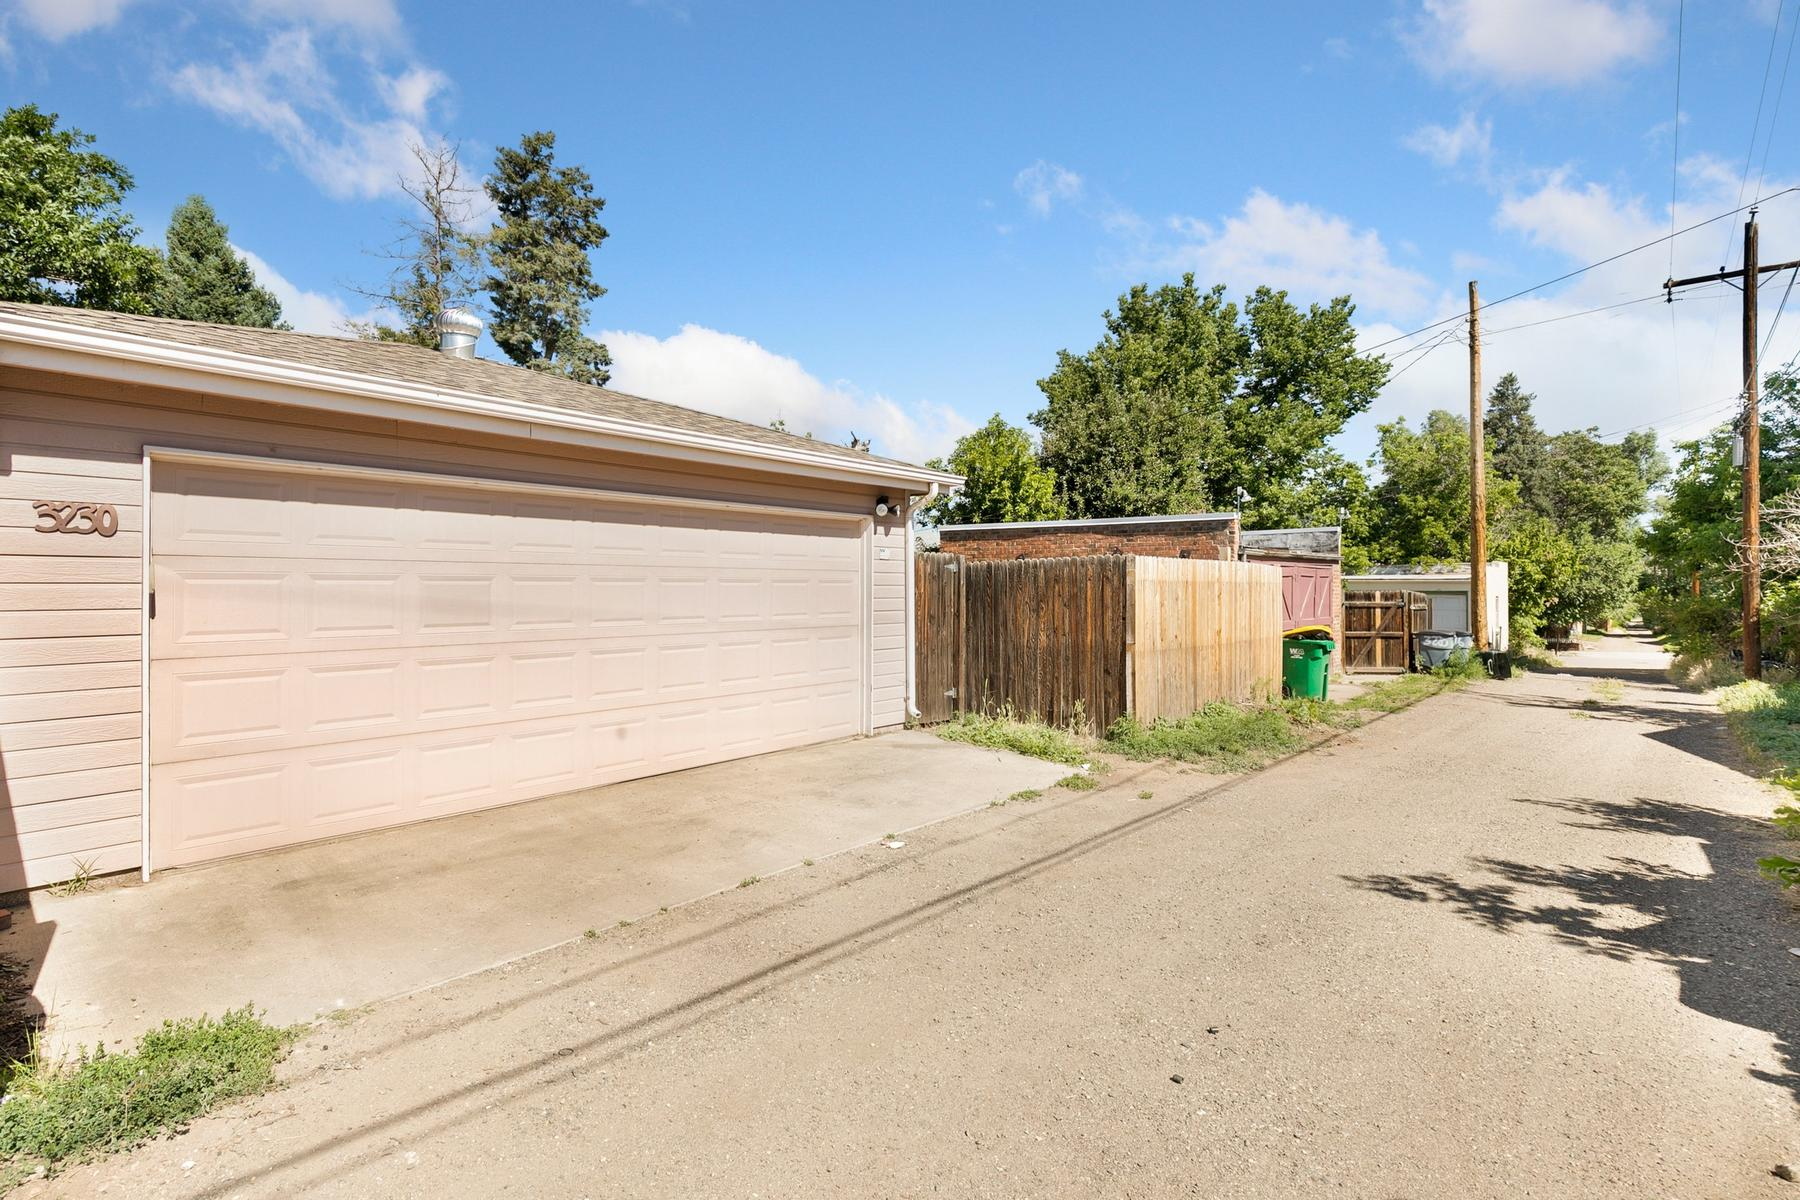 3230 S Lincoln St Englewood CO-033-016-33-MLS_Size.jpg